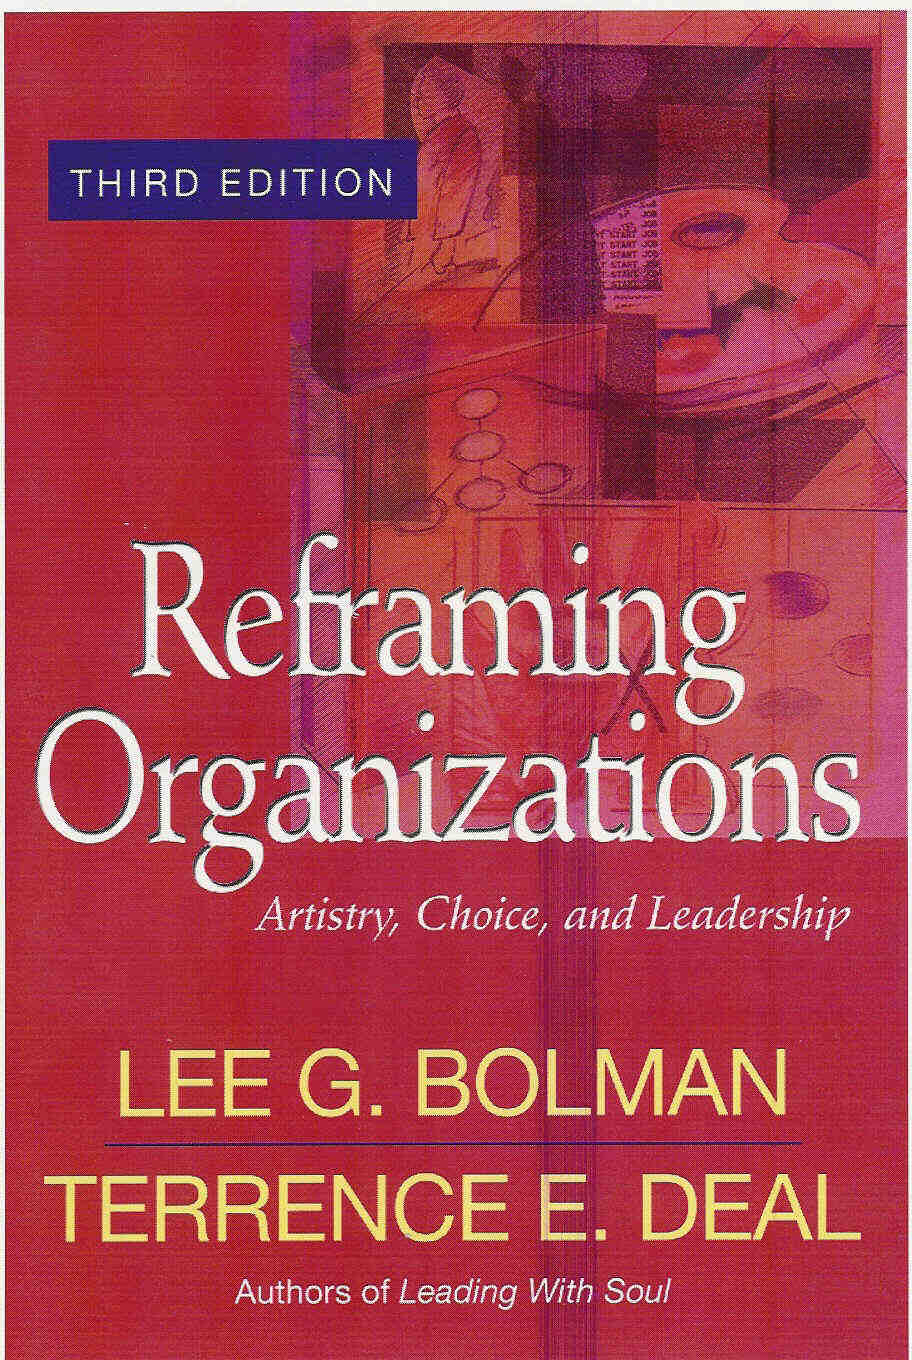 an analysis of bolman and deals four frames Bolman and deal argued that leaders should look at and approach organisational issues from four perspectives, which they called frames in their view, if a leader works with only one habitual frame of reference, he risks being ineffective.